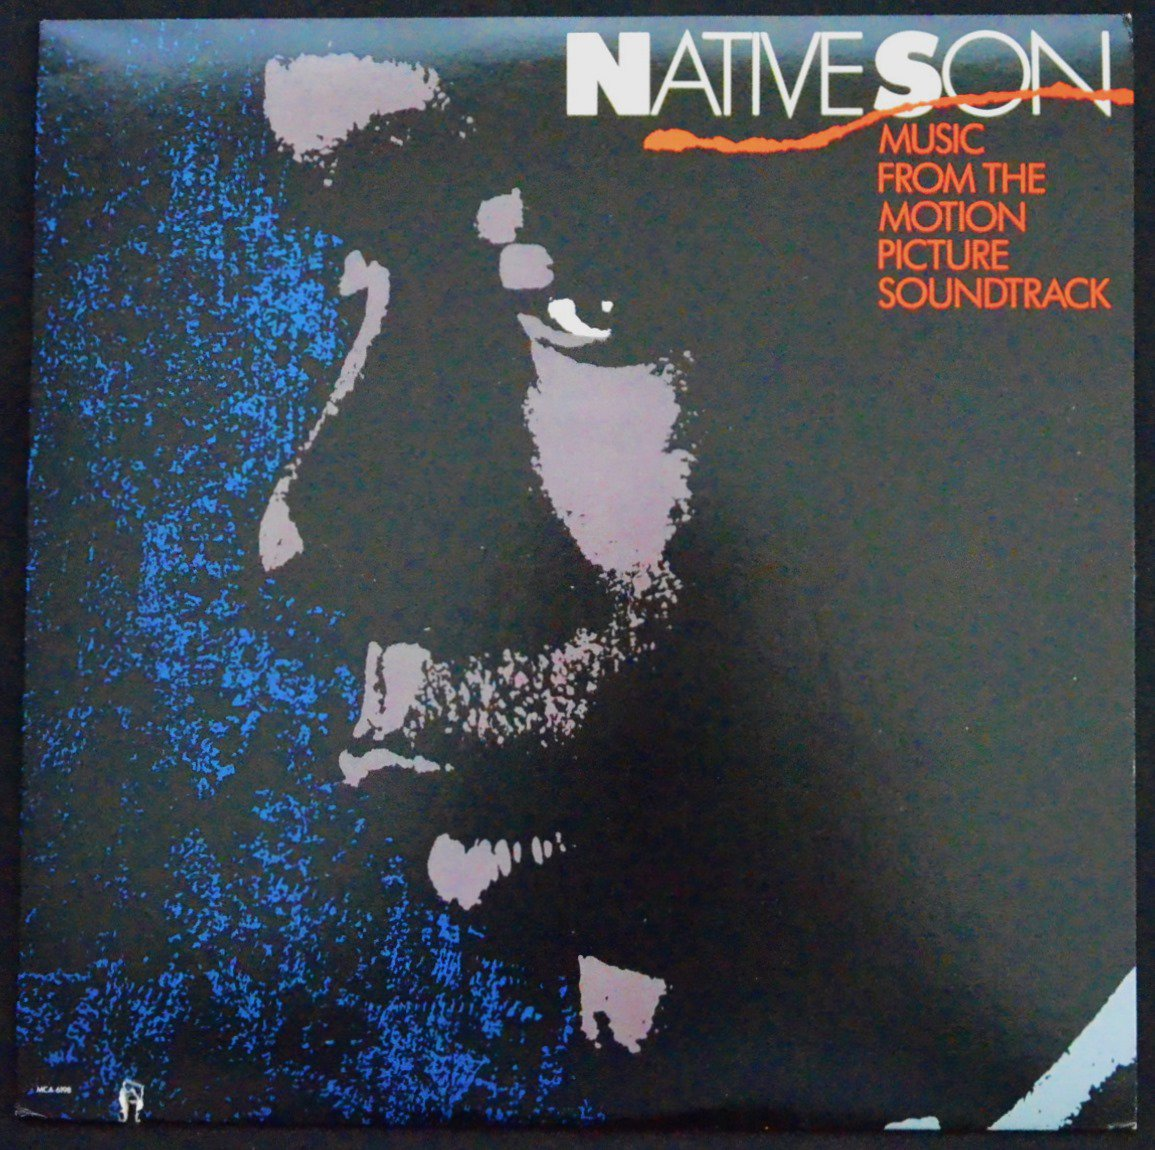 JAMES MTUME ‎/ NATIVE SON (MUSIC FROM THE MOTION PICTURE SOUNDTRACK) (LP)